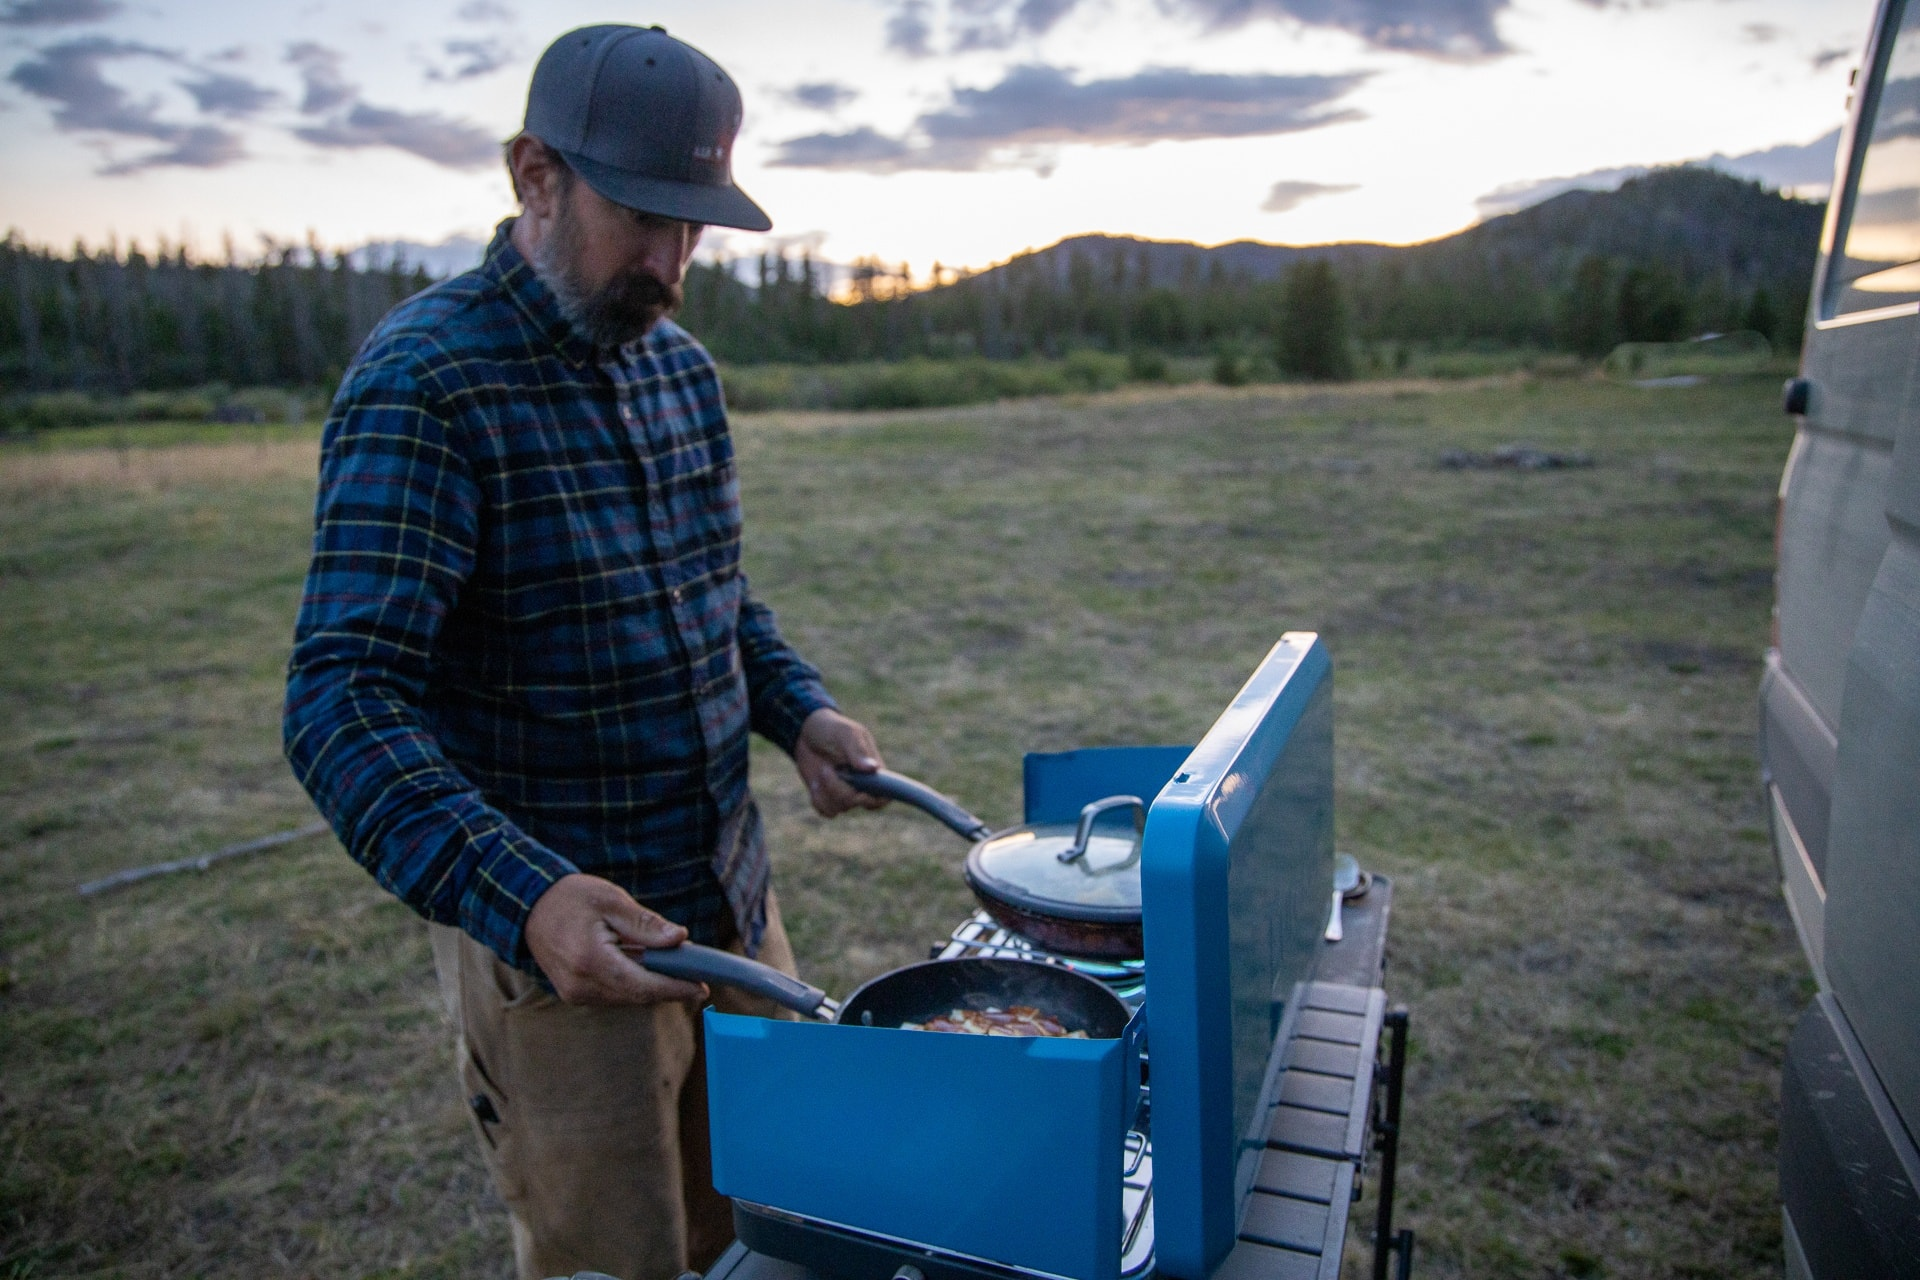 Eureka XL Camp Stove // Save money on the road by bringing your own camp cooking gear. Here is our checklist for the best outdoor camp kitchen cooking essentials.